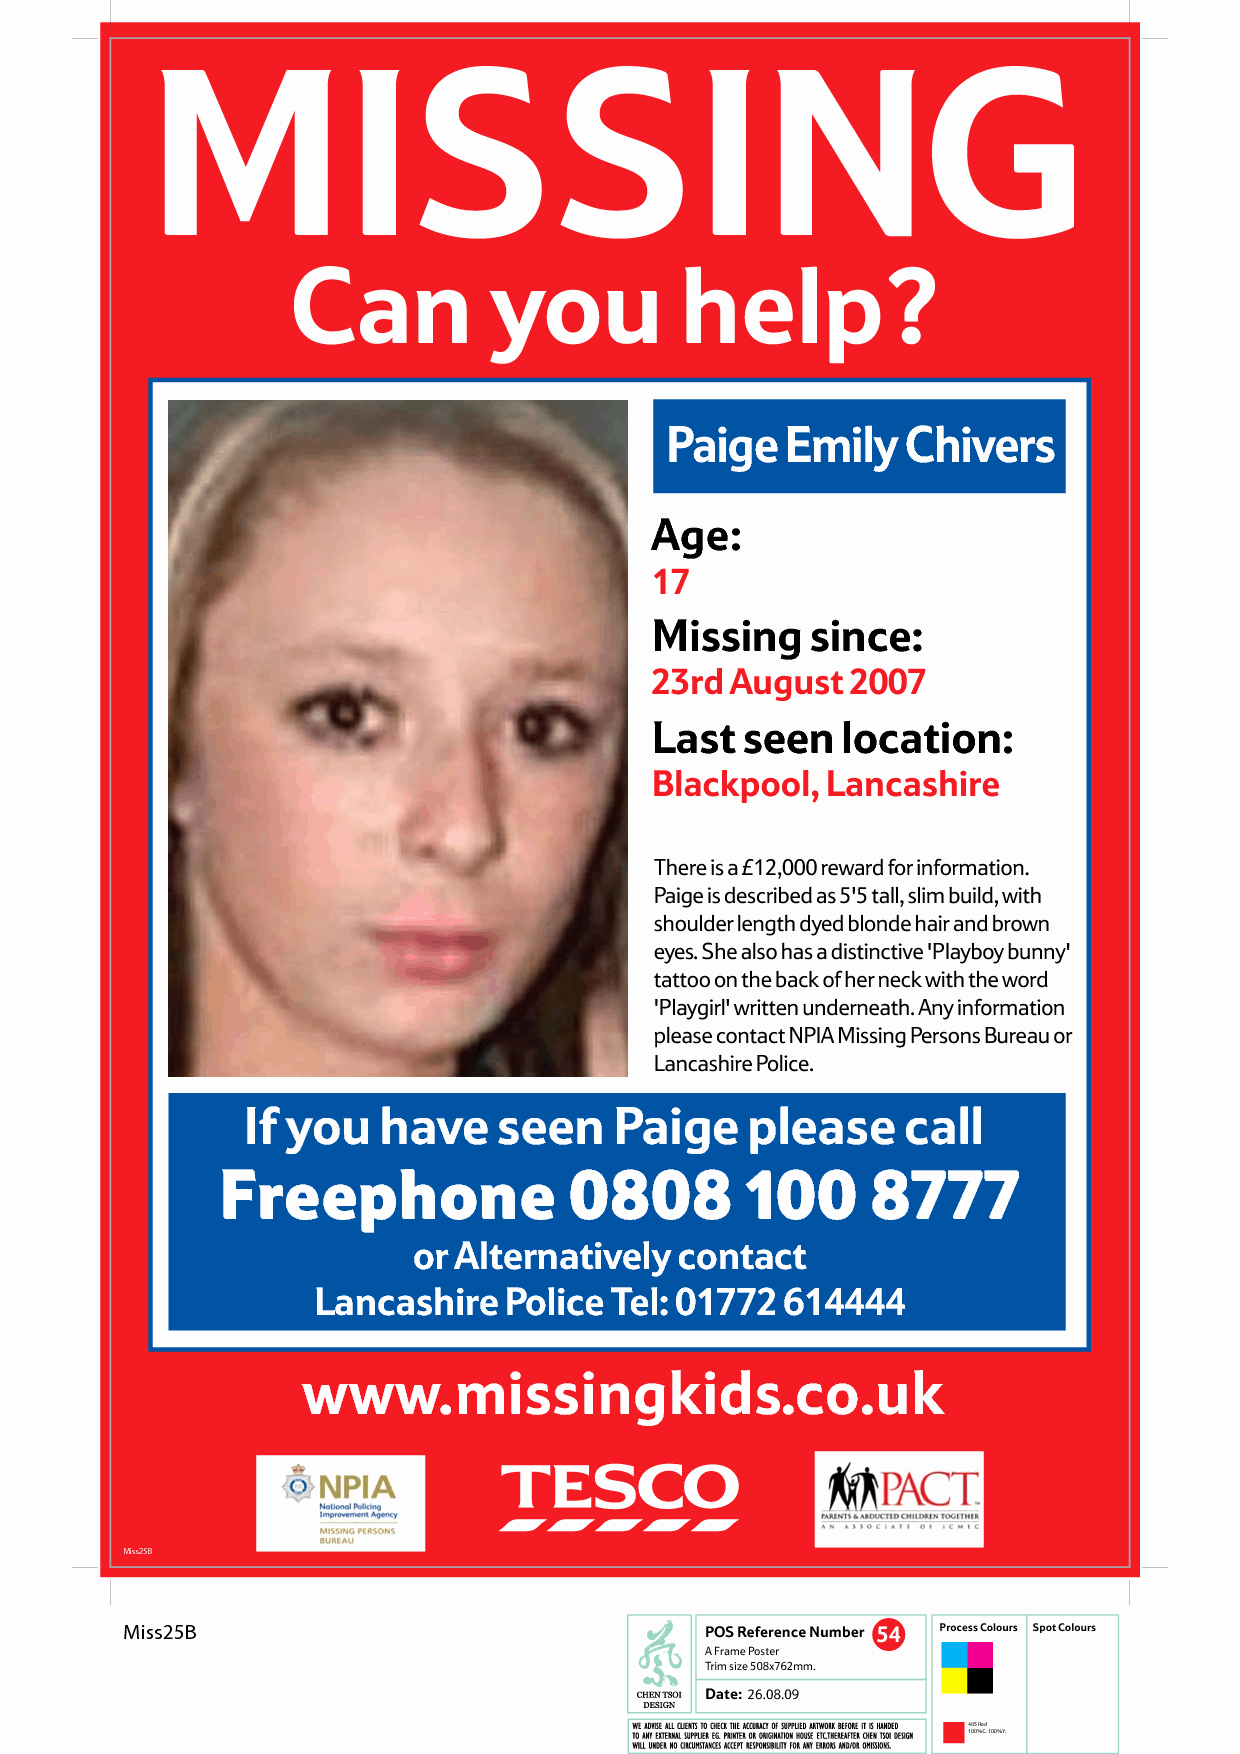 Missing Person Poster Template Luxury 10 Missing Person Poster Templates Excel Pdf formats